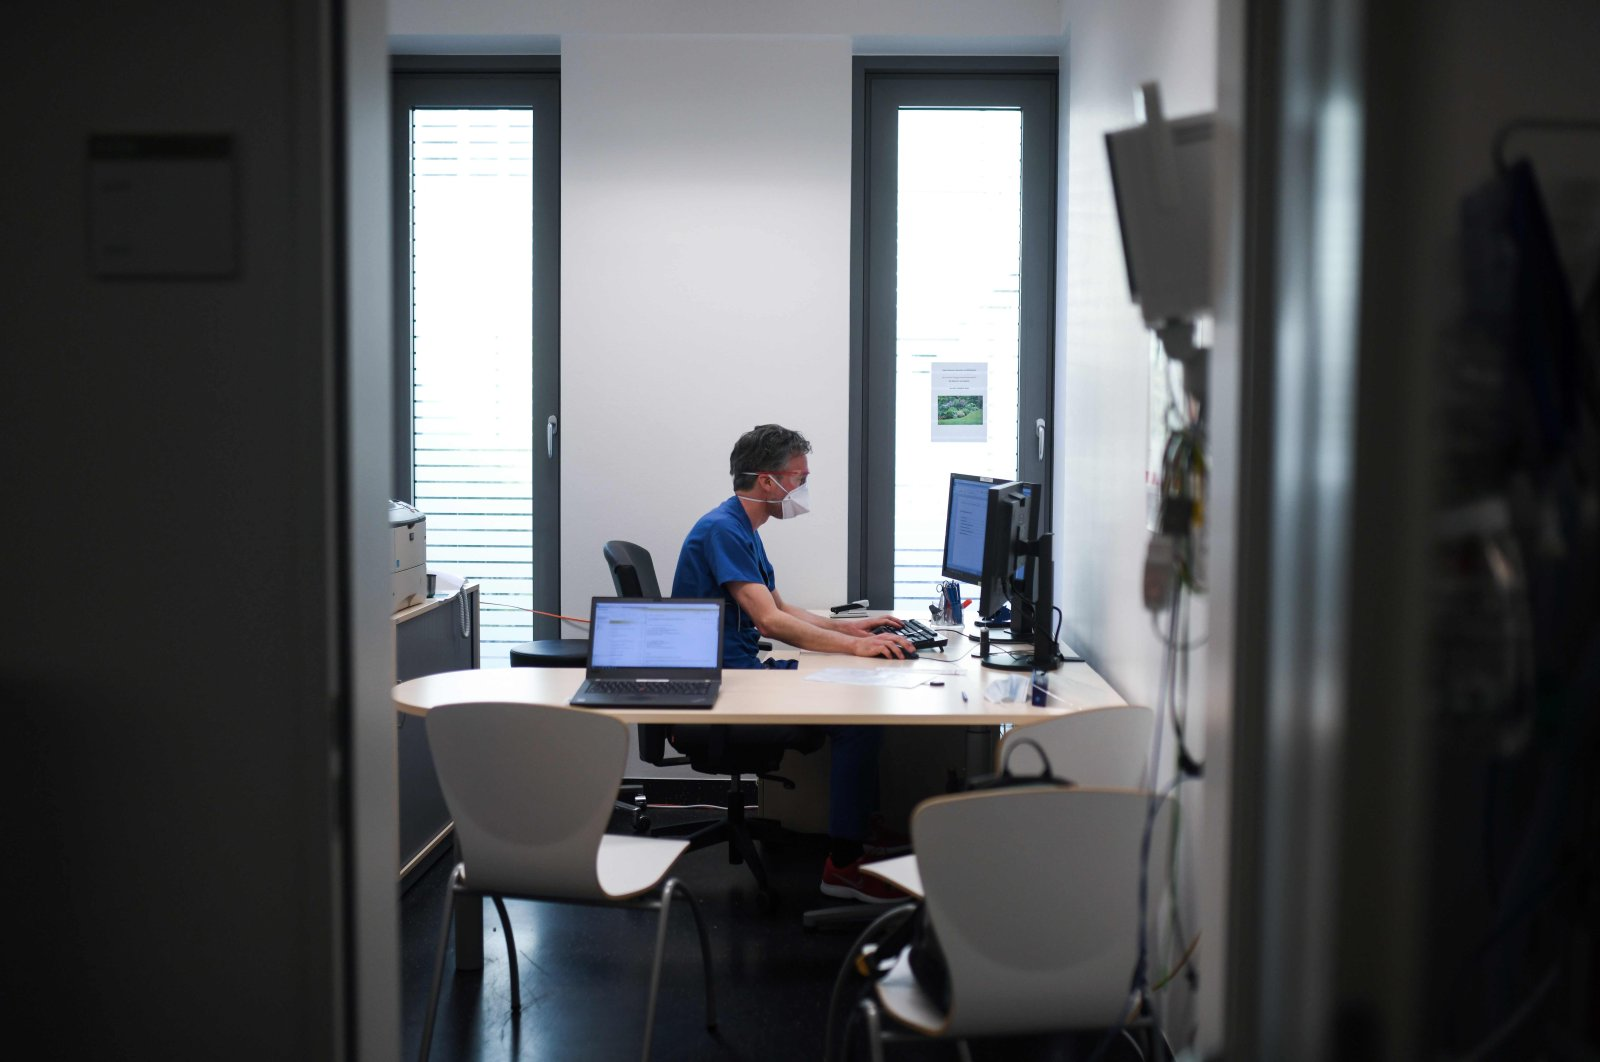 Doctor David Fistera works in his office at the central reception center for corona cases at the University hospital in Essen, western Germany, on March 26, 2020. (AFP Photo)